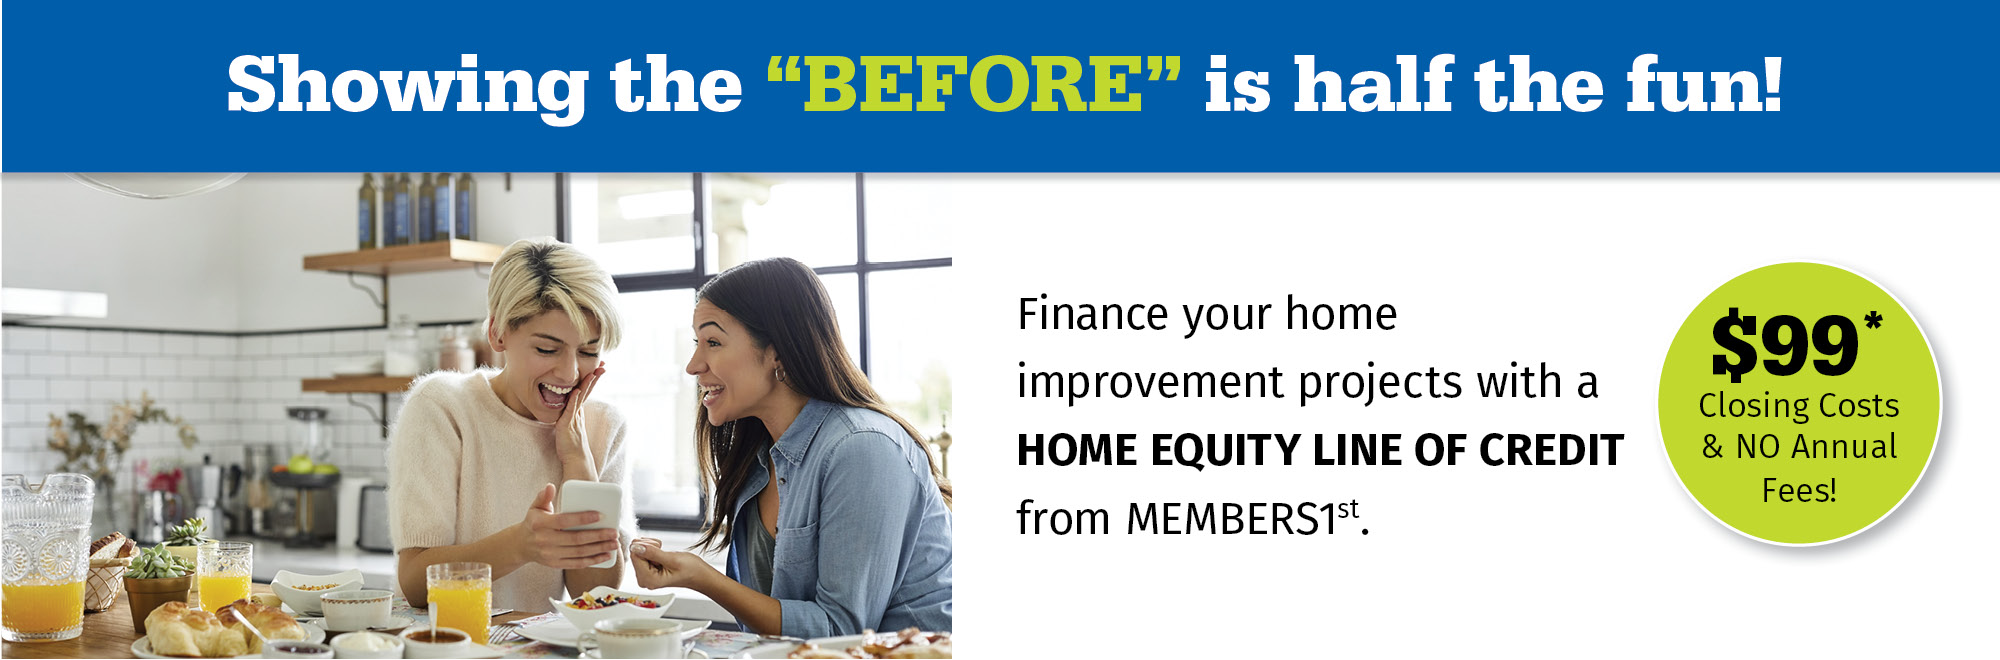 """Showing the """"BEFORE"""" is half the fun! Finance your home improvement projects with a home equity line of credit from MEMBERS1st! $99 closing costs & no annual fees."""